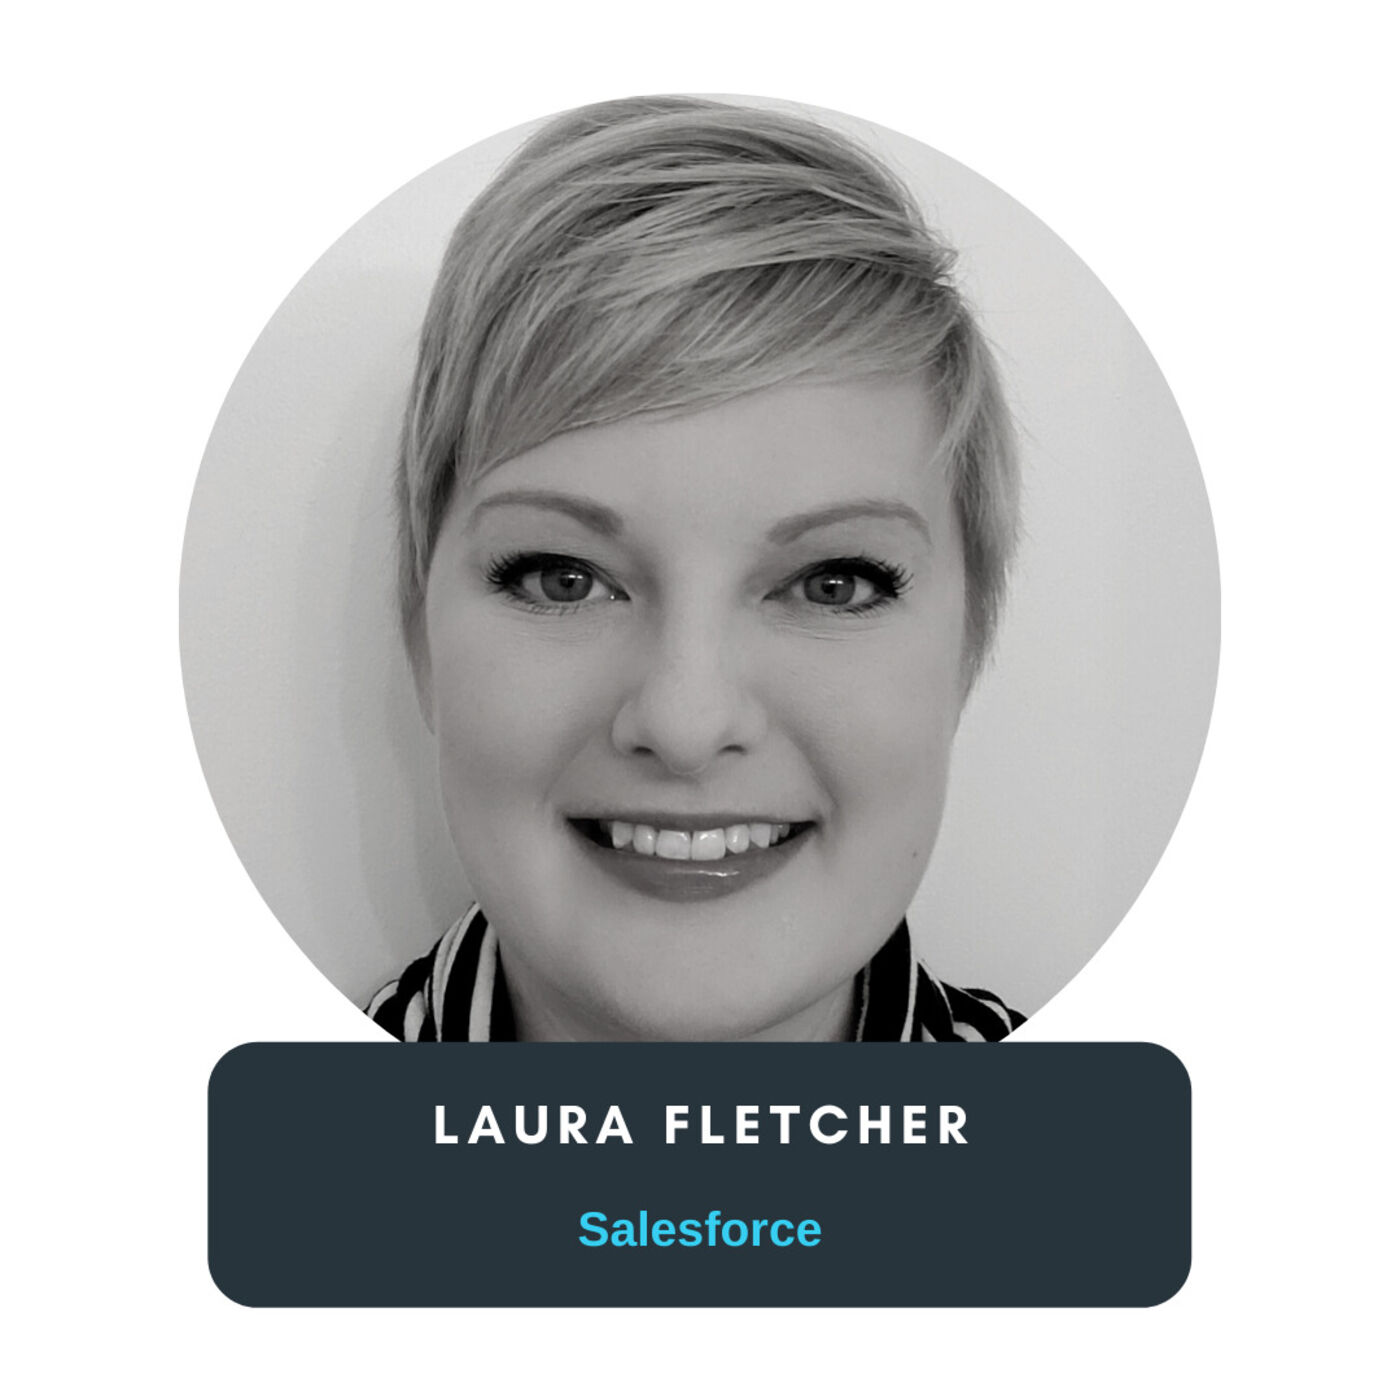 70 // Design Thinking and Getting Learner Perspective with Laura Fletcher